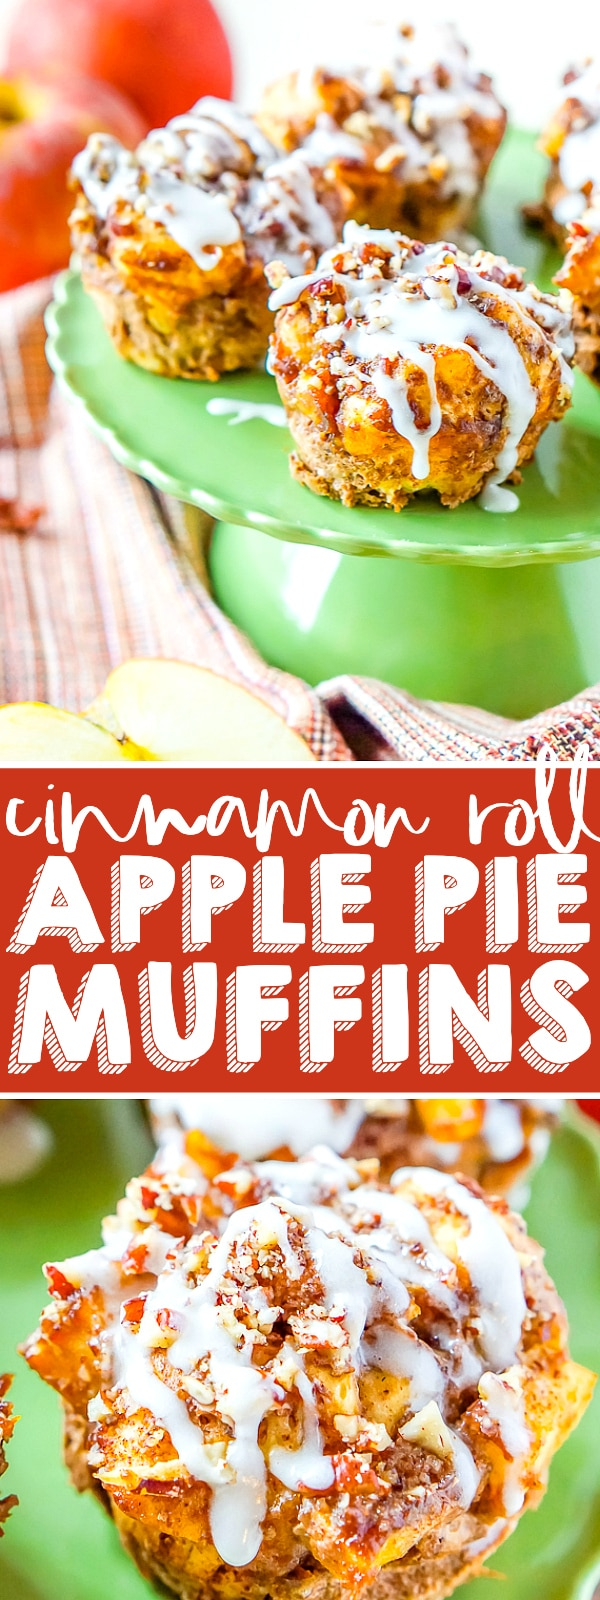 Apple Pie Cinnamon Roll Muffins - A classic breakfast sweet is combined with a holiday dessert favorite to make the perfect holiday muffin! An easy and delicious show stopper for your holiday menus! | The Love Nerds #christmasbreakfast #thanksgivingbrunch #holidaymuffins